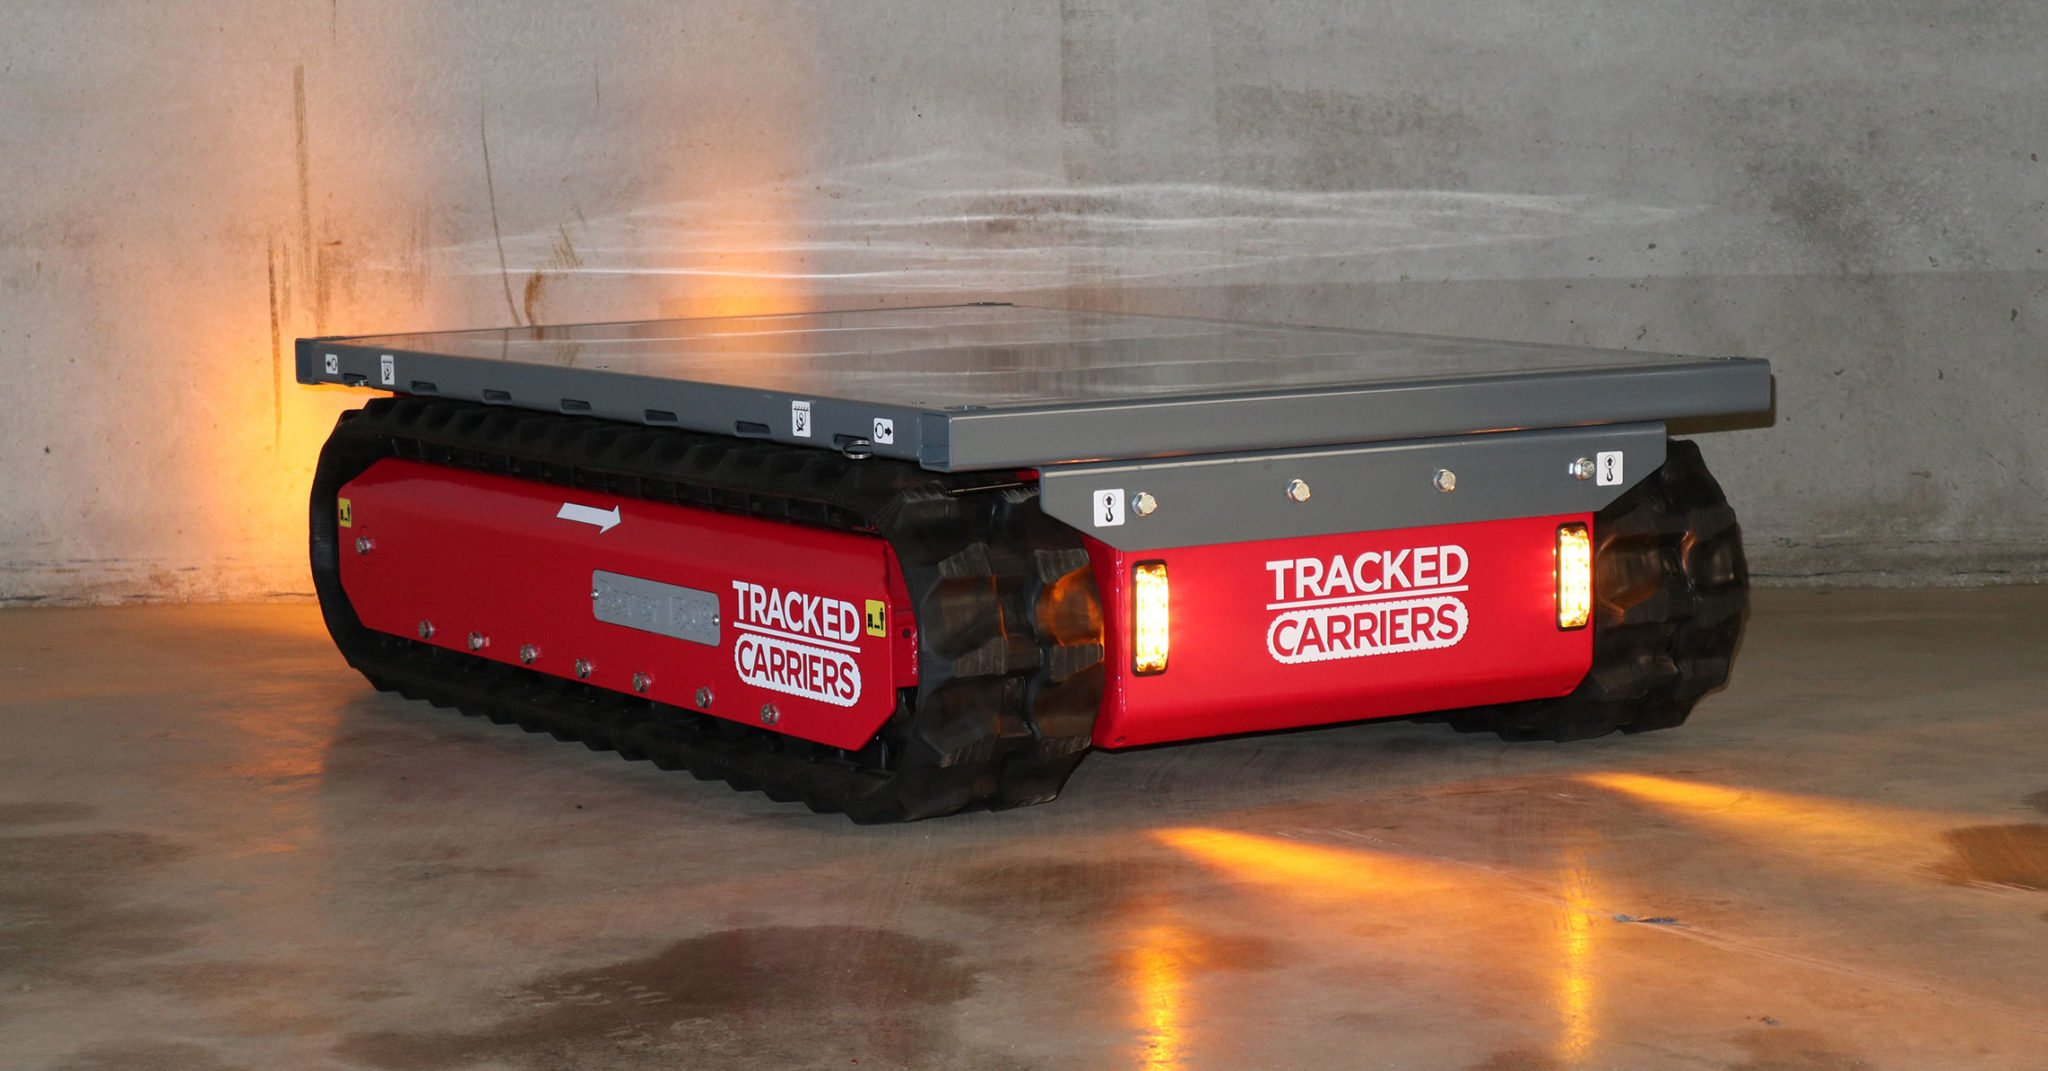 Tracked Carriers Material Handling